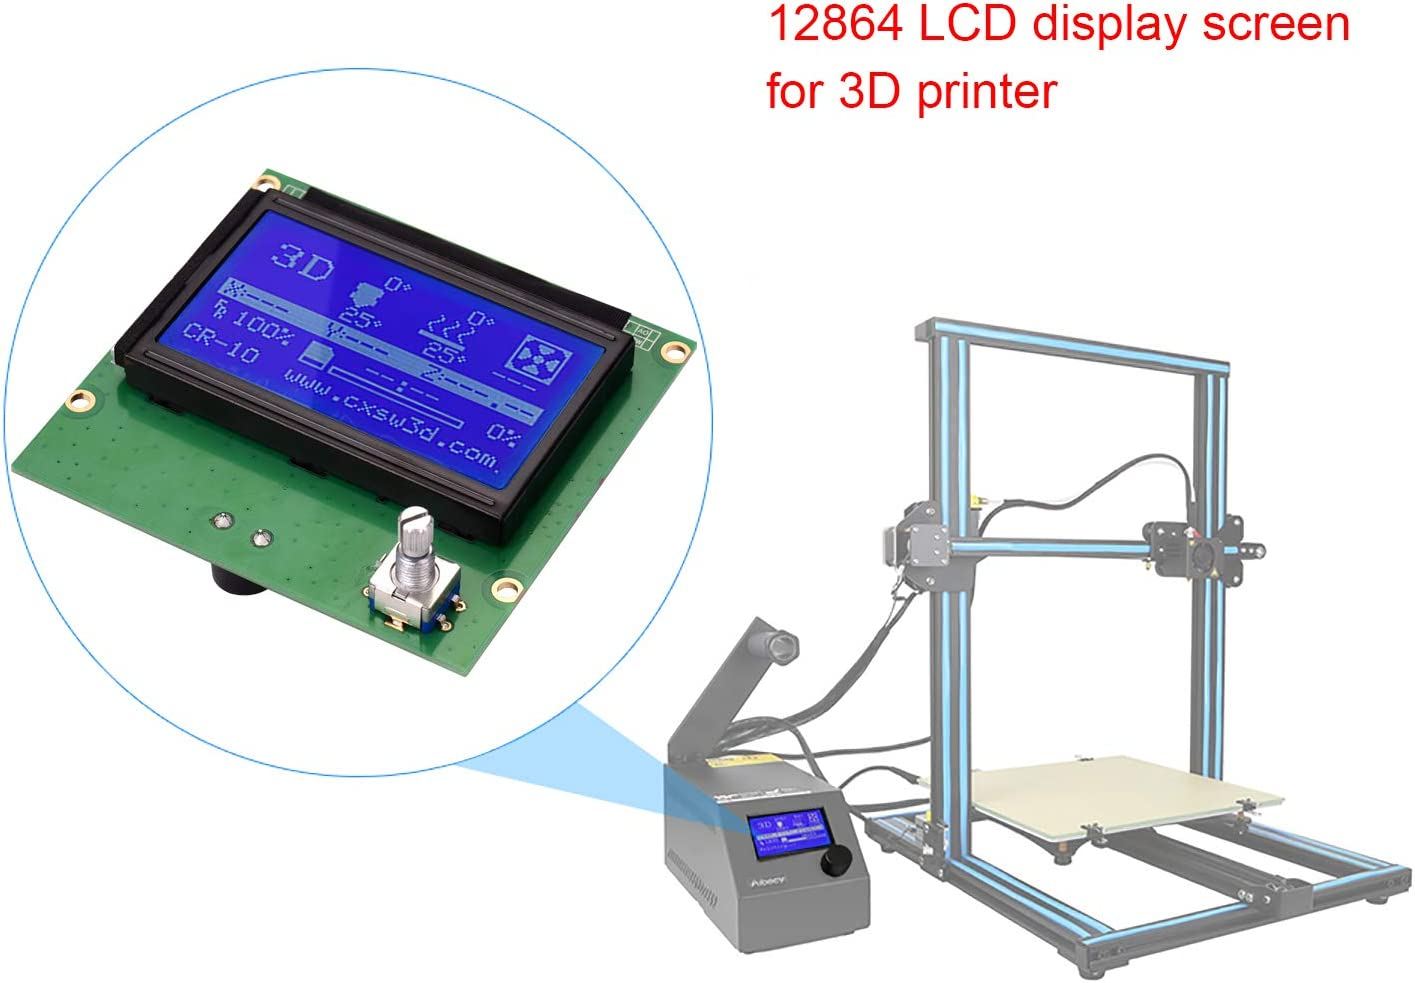 Aibecy 3D Printer Parts 12864 LCD Display Screen with Cable Replacement for Creality CR-10 CR-10S S4 S5 Ender 3 3D Printer